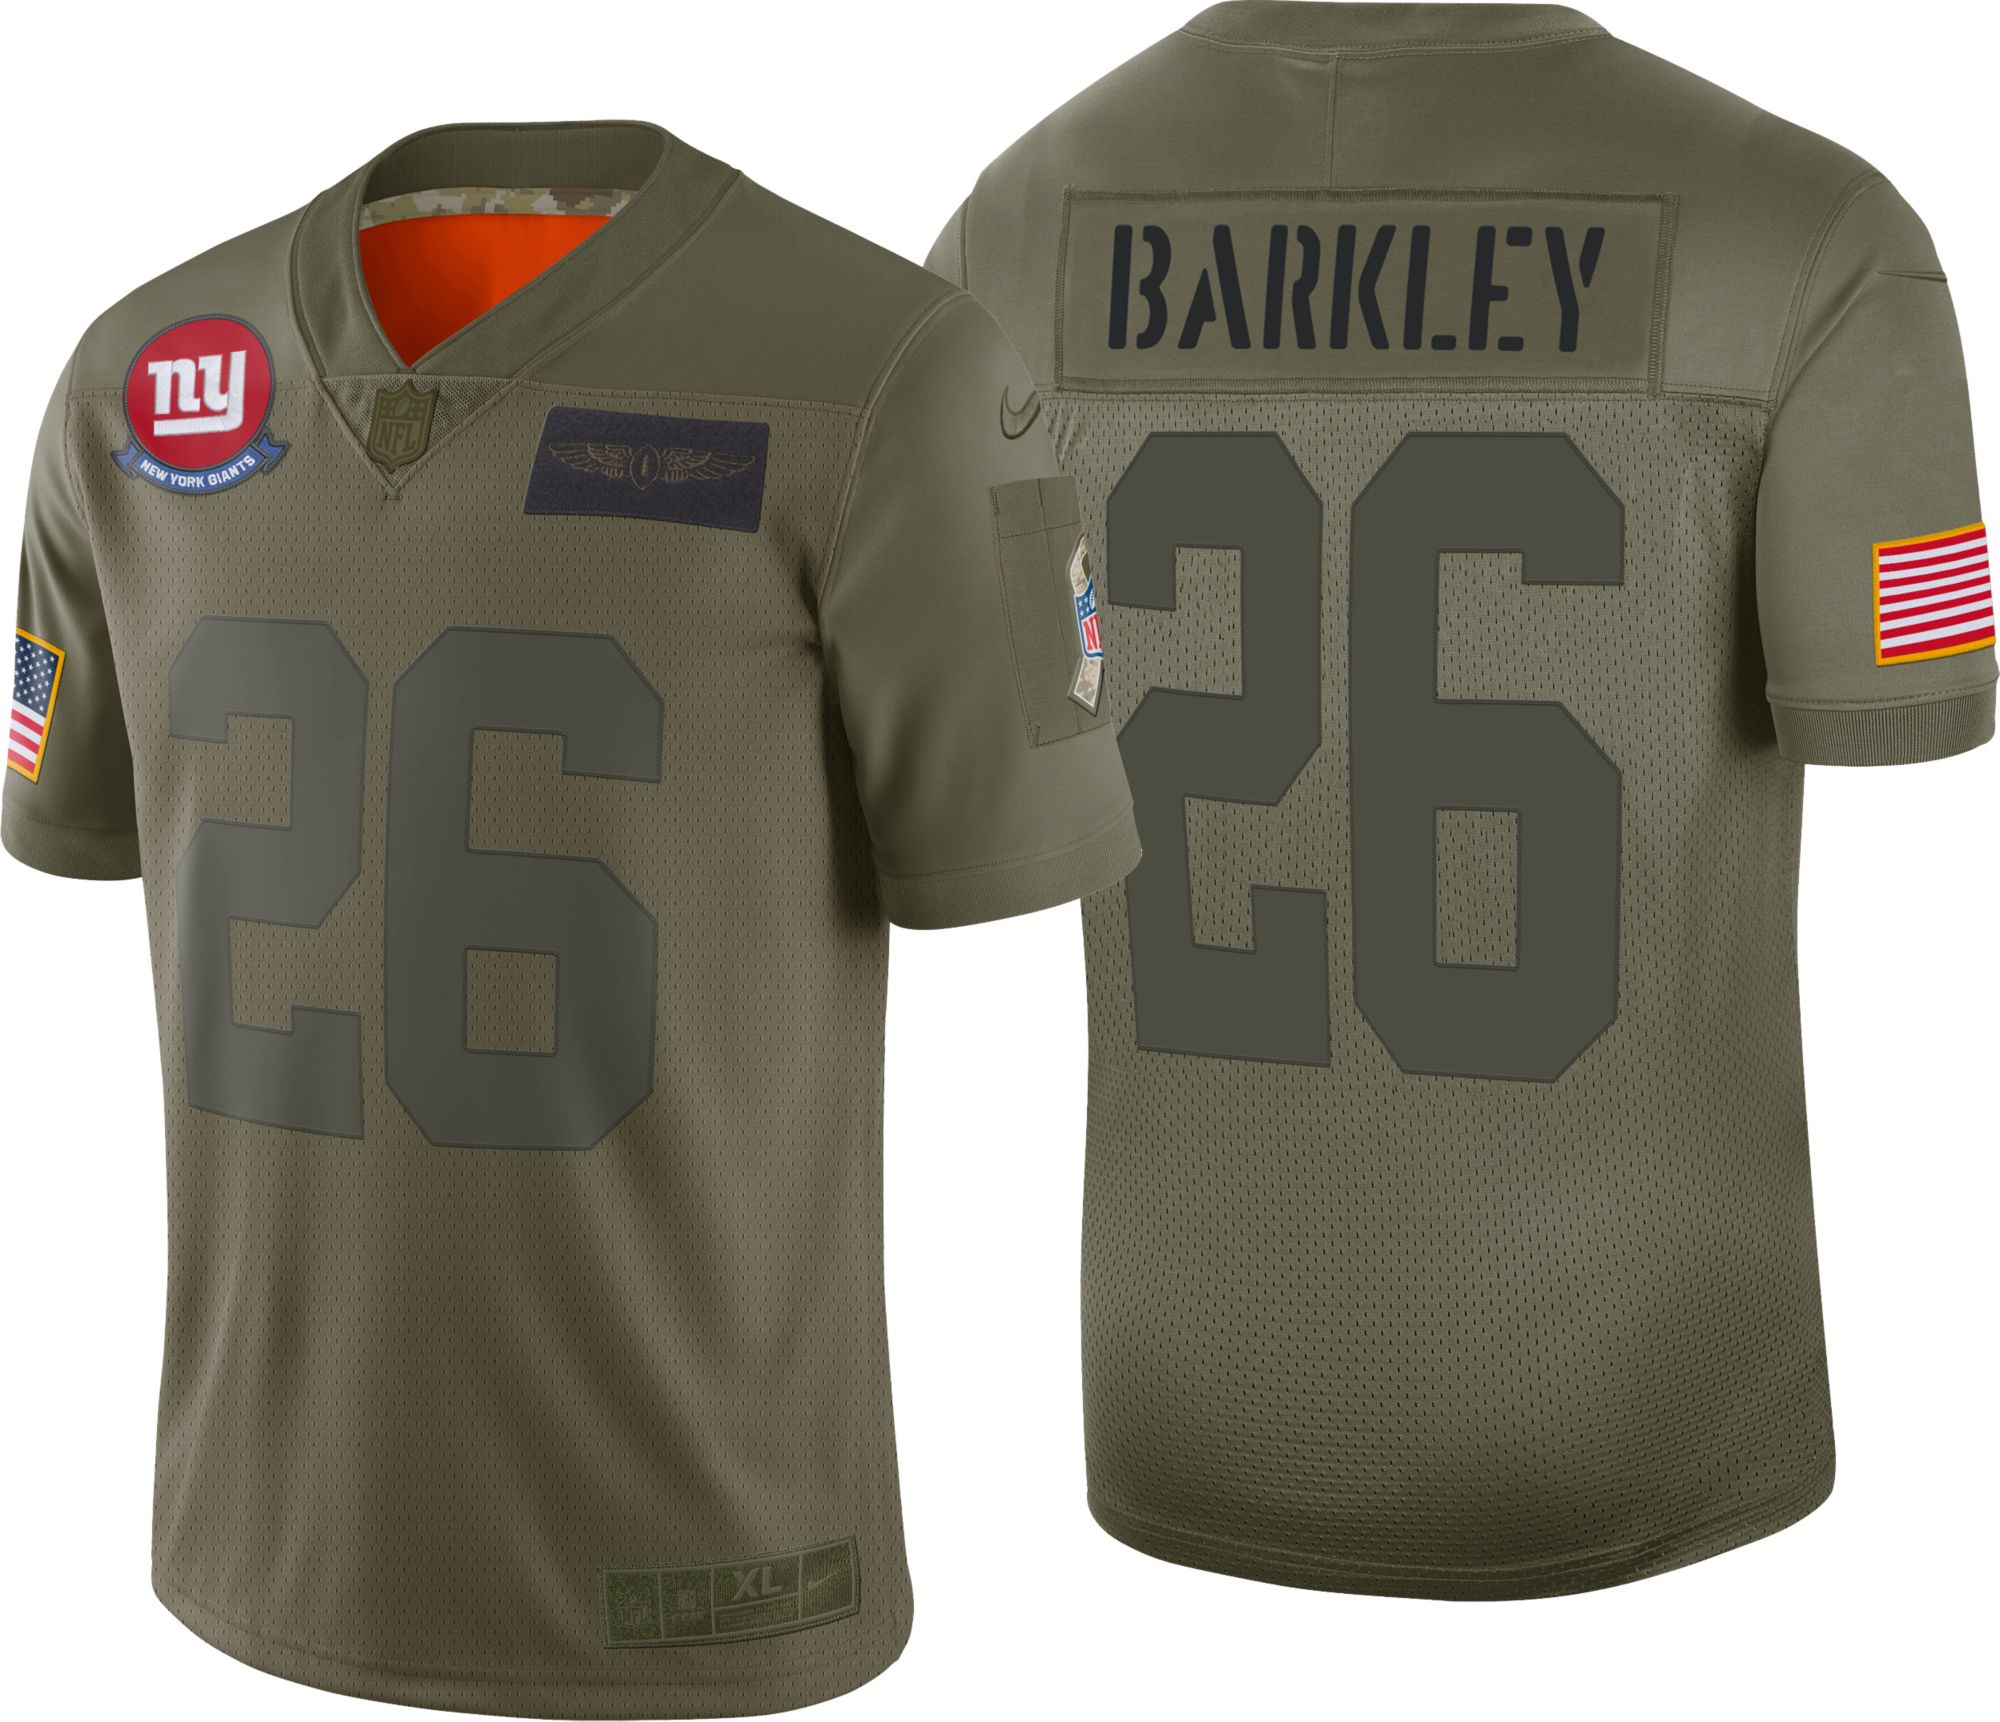 salute for service jersey